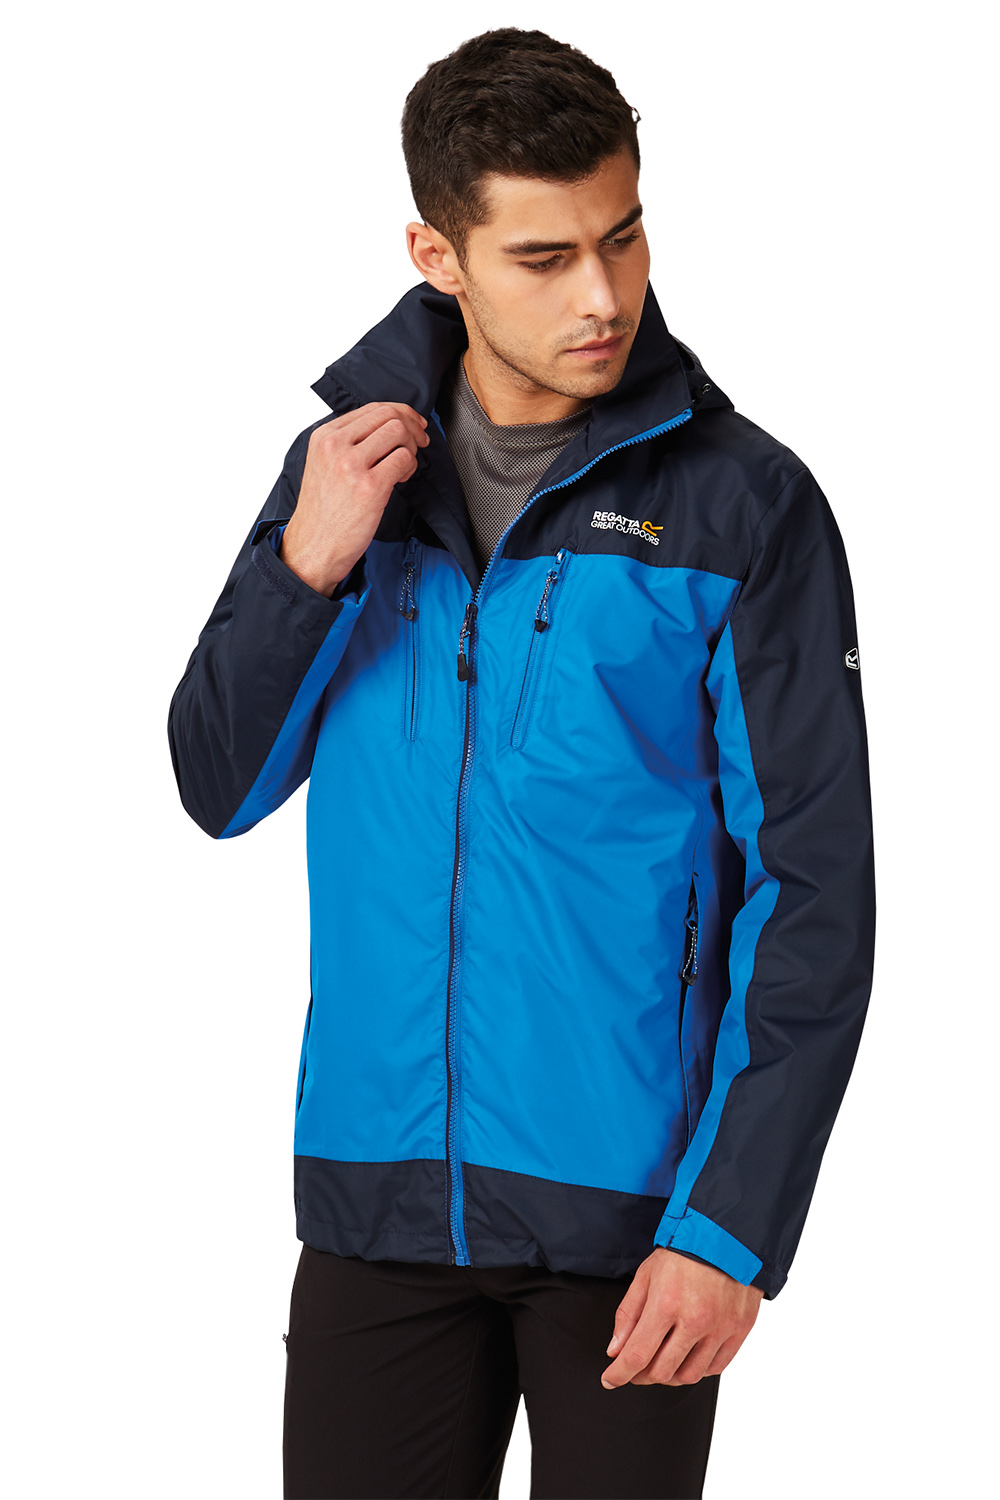 Regatta-Mens-Calderdale-II-Jacket-Waterproof-Breathable-Isotex-5000-Hooded-Coat thumbnail 8